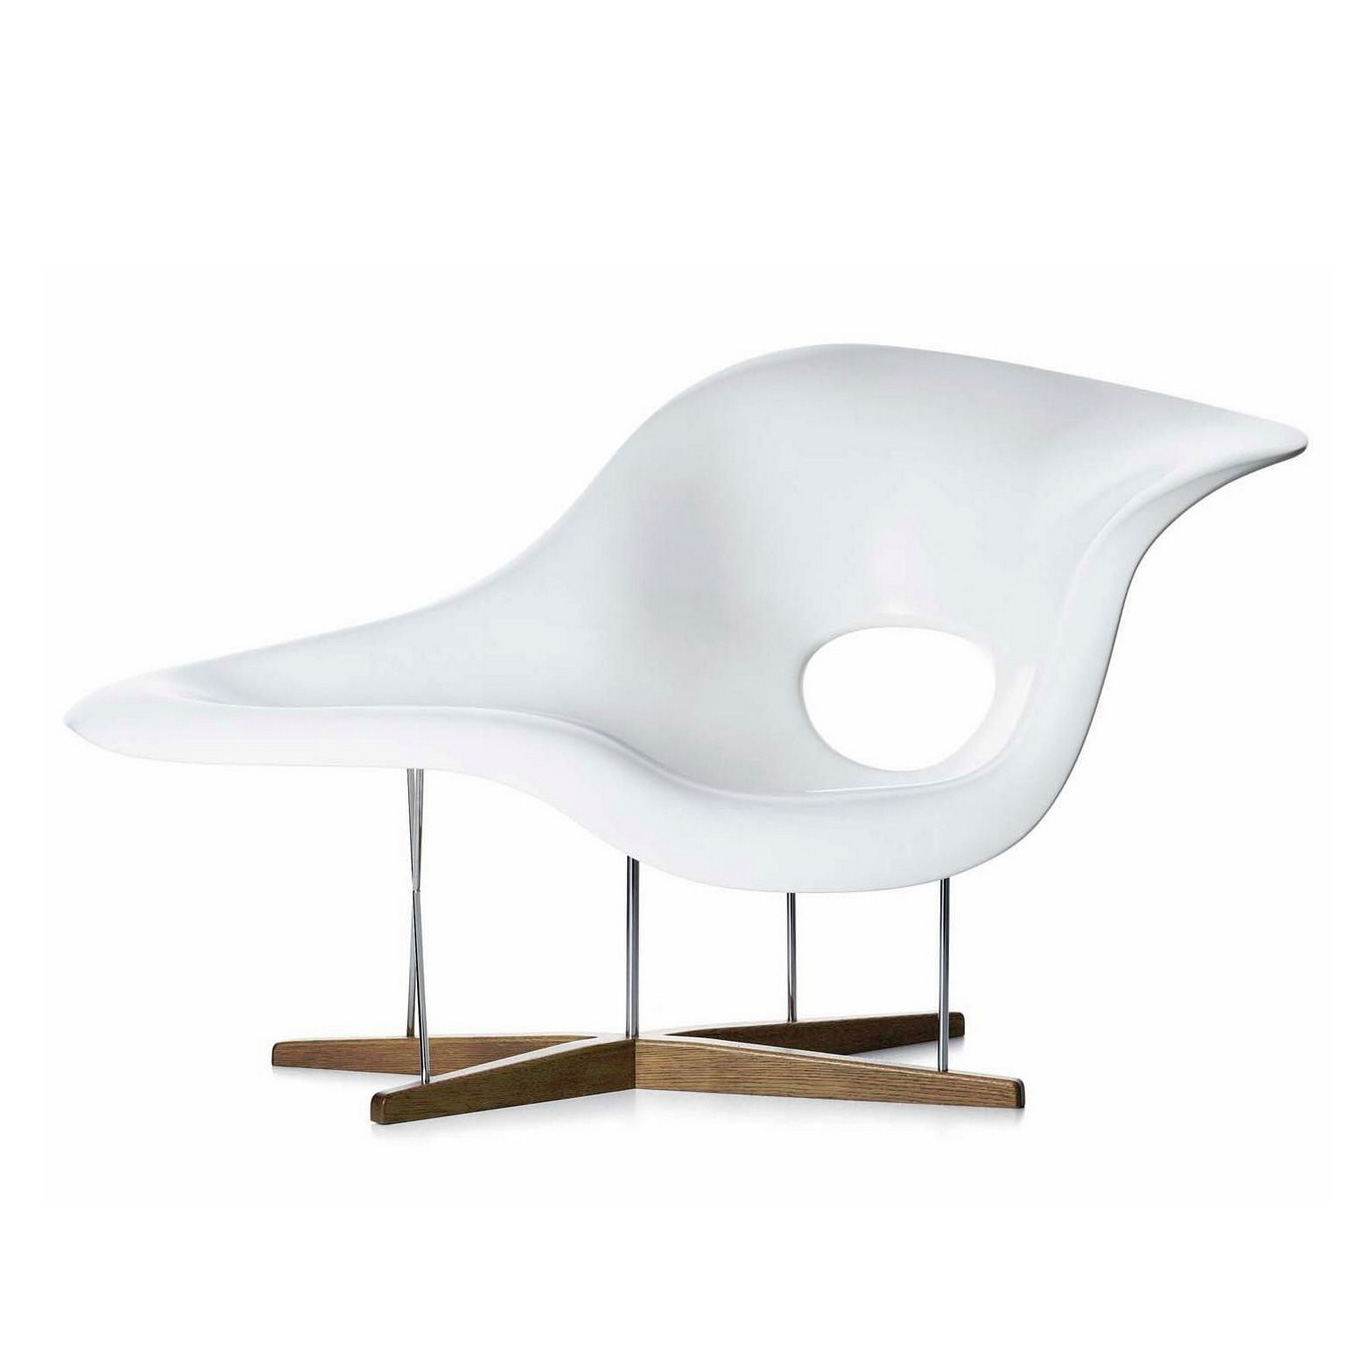 Charles Eames Chaise Longue ✔ Bauhaus Chaiselongue